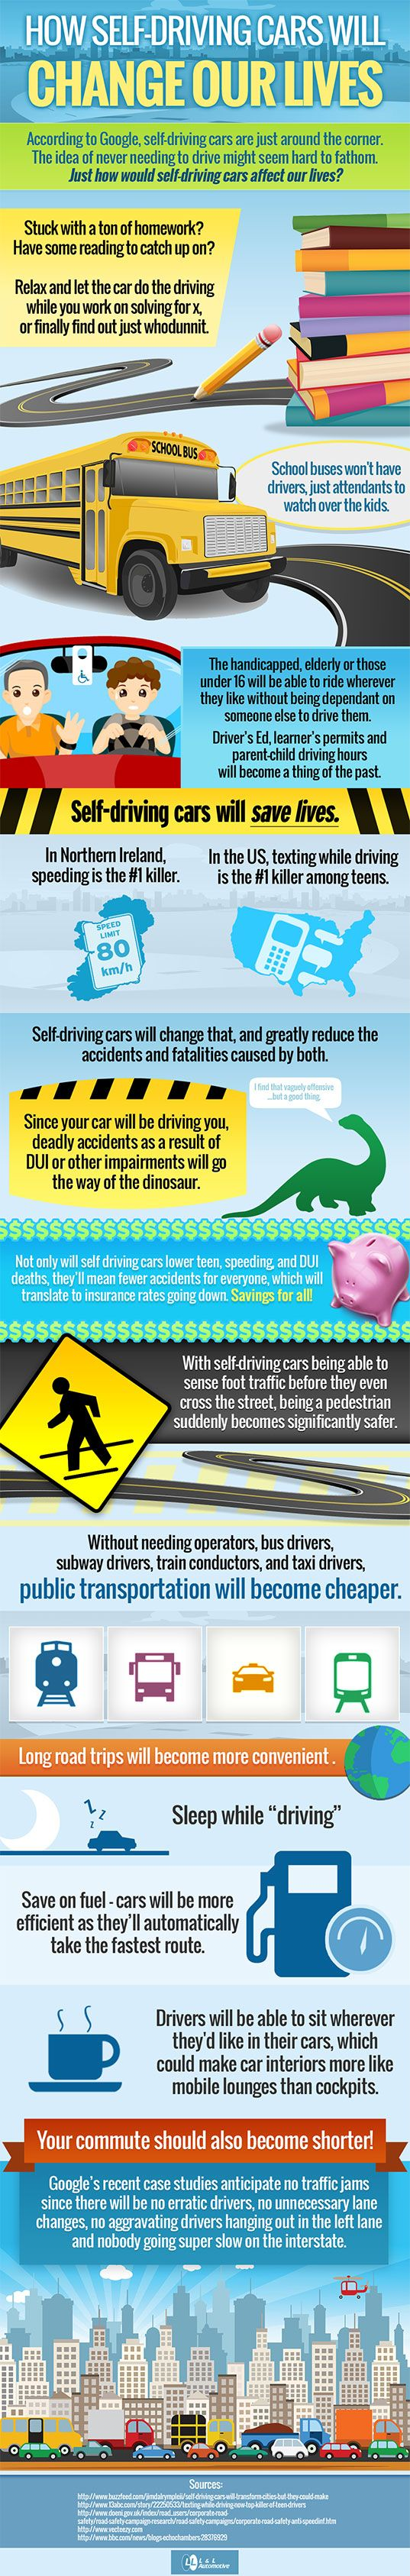 INFOGRAPHIC: How Self-Driving Cars Will Change Our Lives